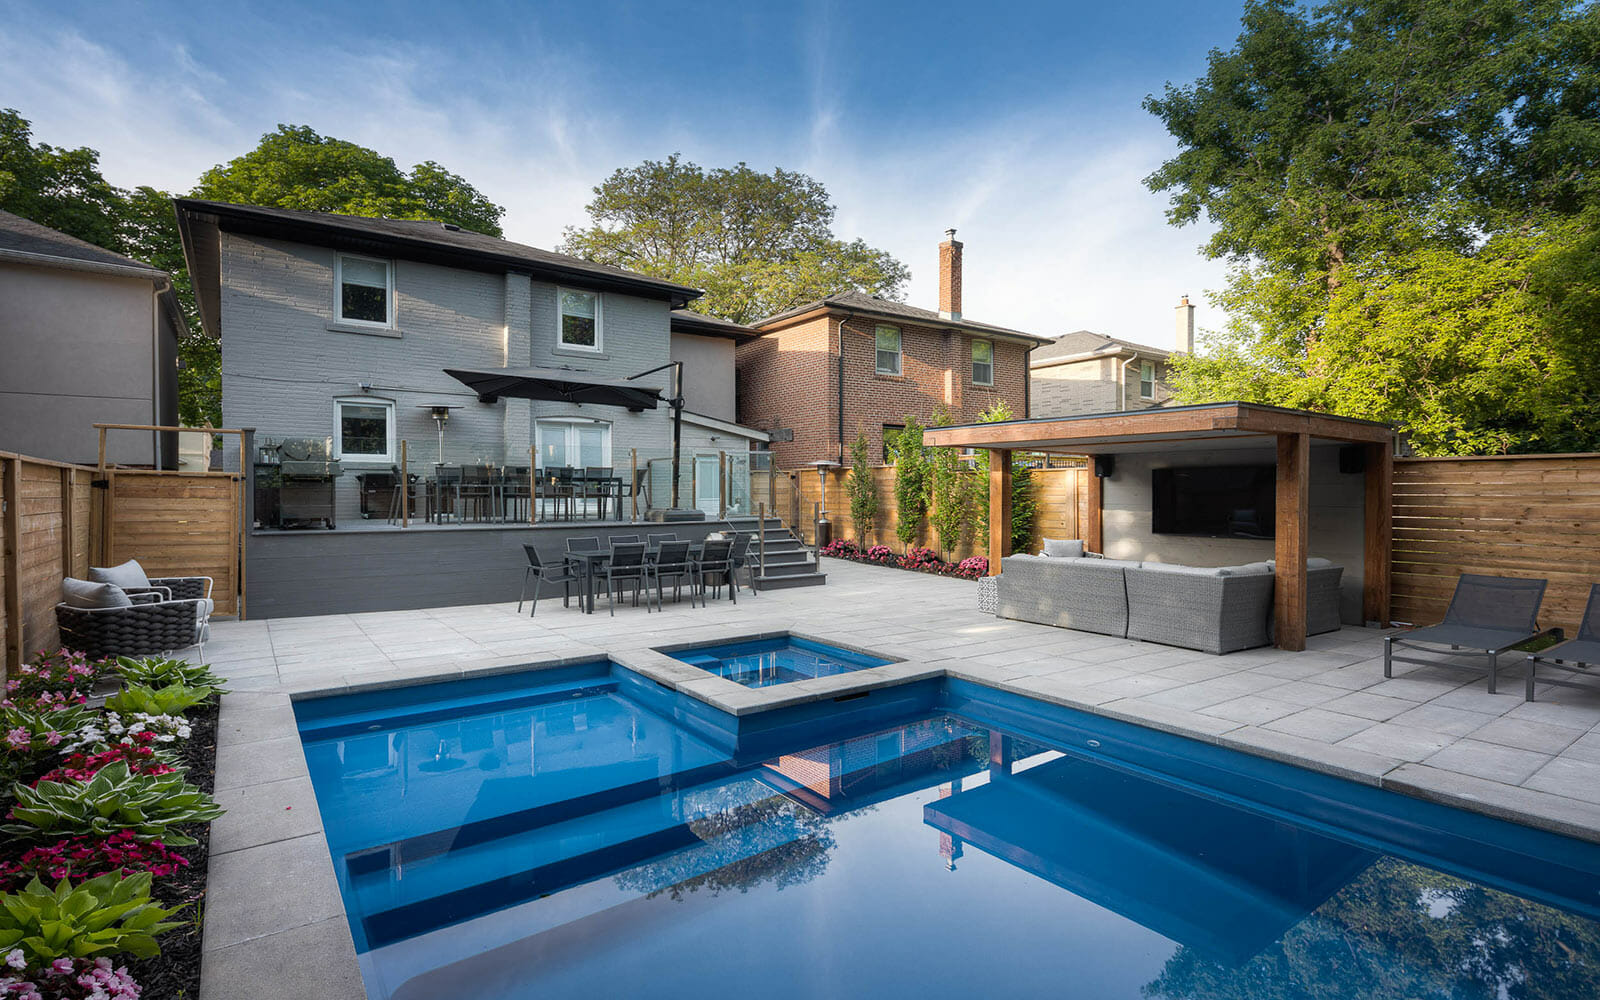 Complete Toronto Landscaping Project; Featuring Composite Decking, Stainless Steel Glass Railings, Fiberglass Pool Installation, Privacy Fence & Woodworking Pergola by Toronto Landscaping Company.